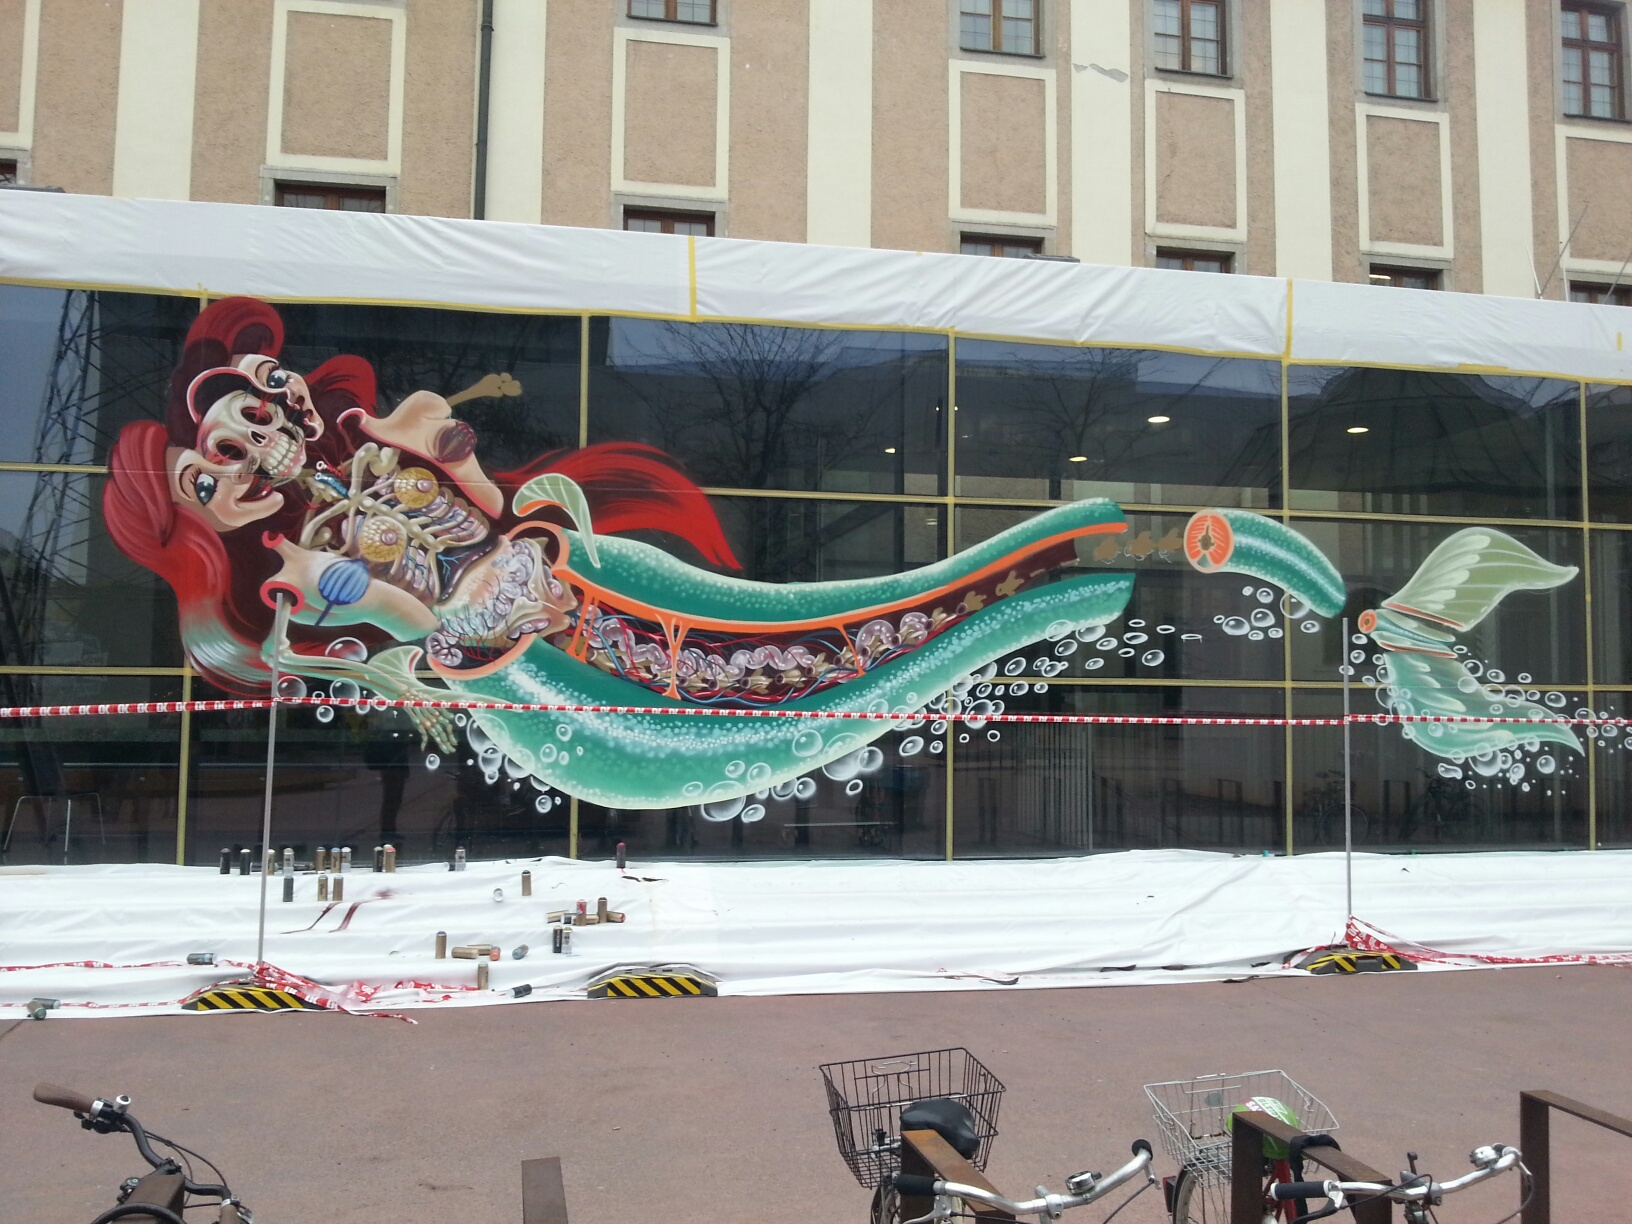 nychos-dissection-of-the-little-mermaid-new-mural-in-linz-05